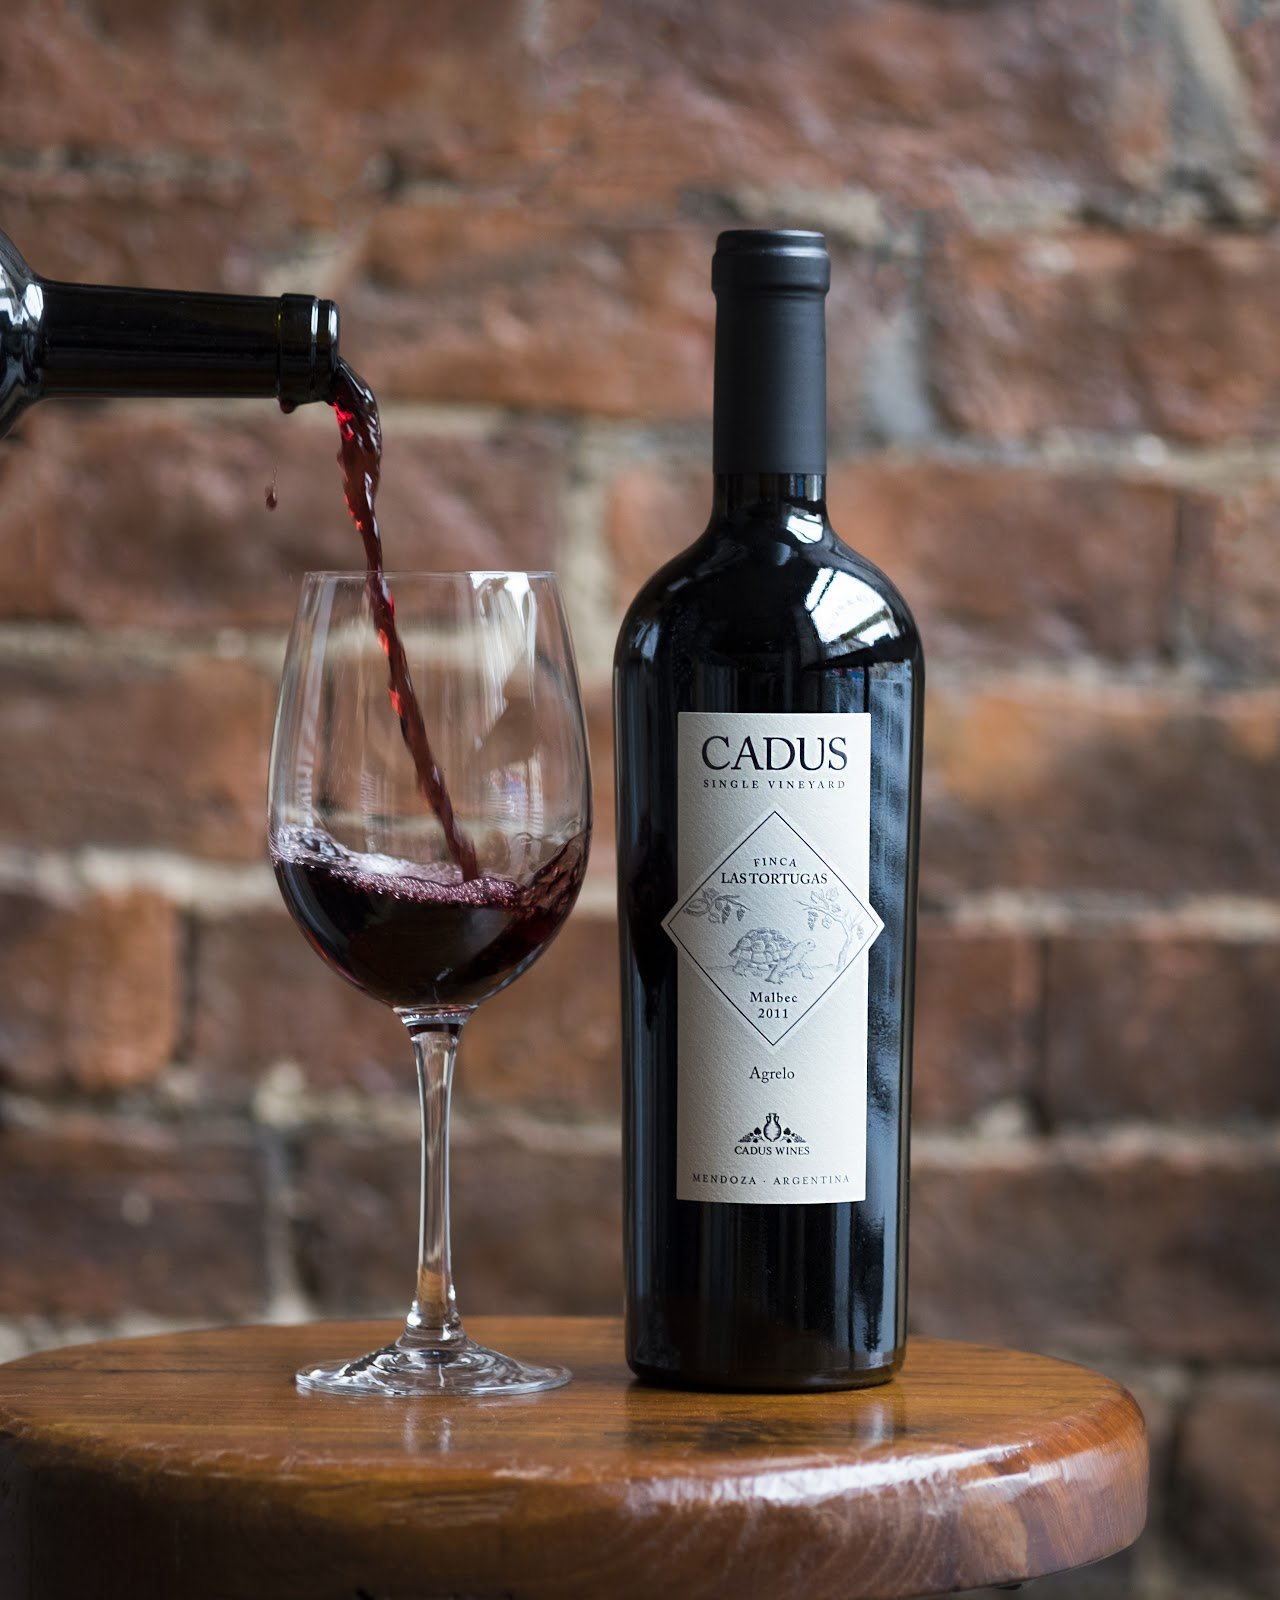 Porter Rye On Twitter The Wine Has A Lovely Rich Palate Weight With Balanced Grainy Tannins Perfect To Enjoy Alongside One Of Our Sharing Steaks